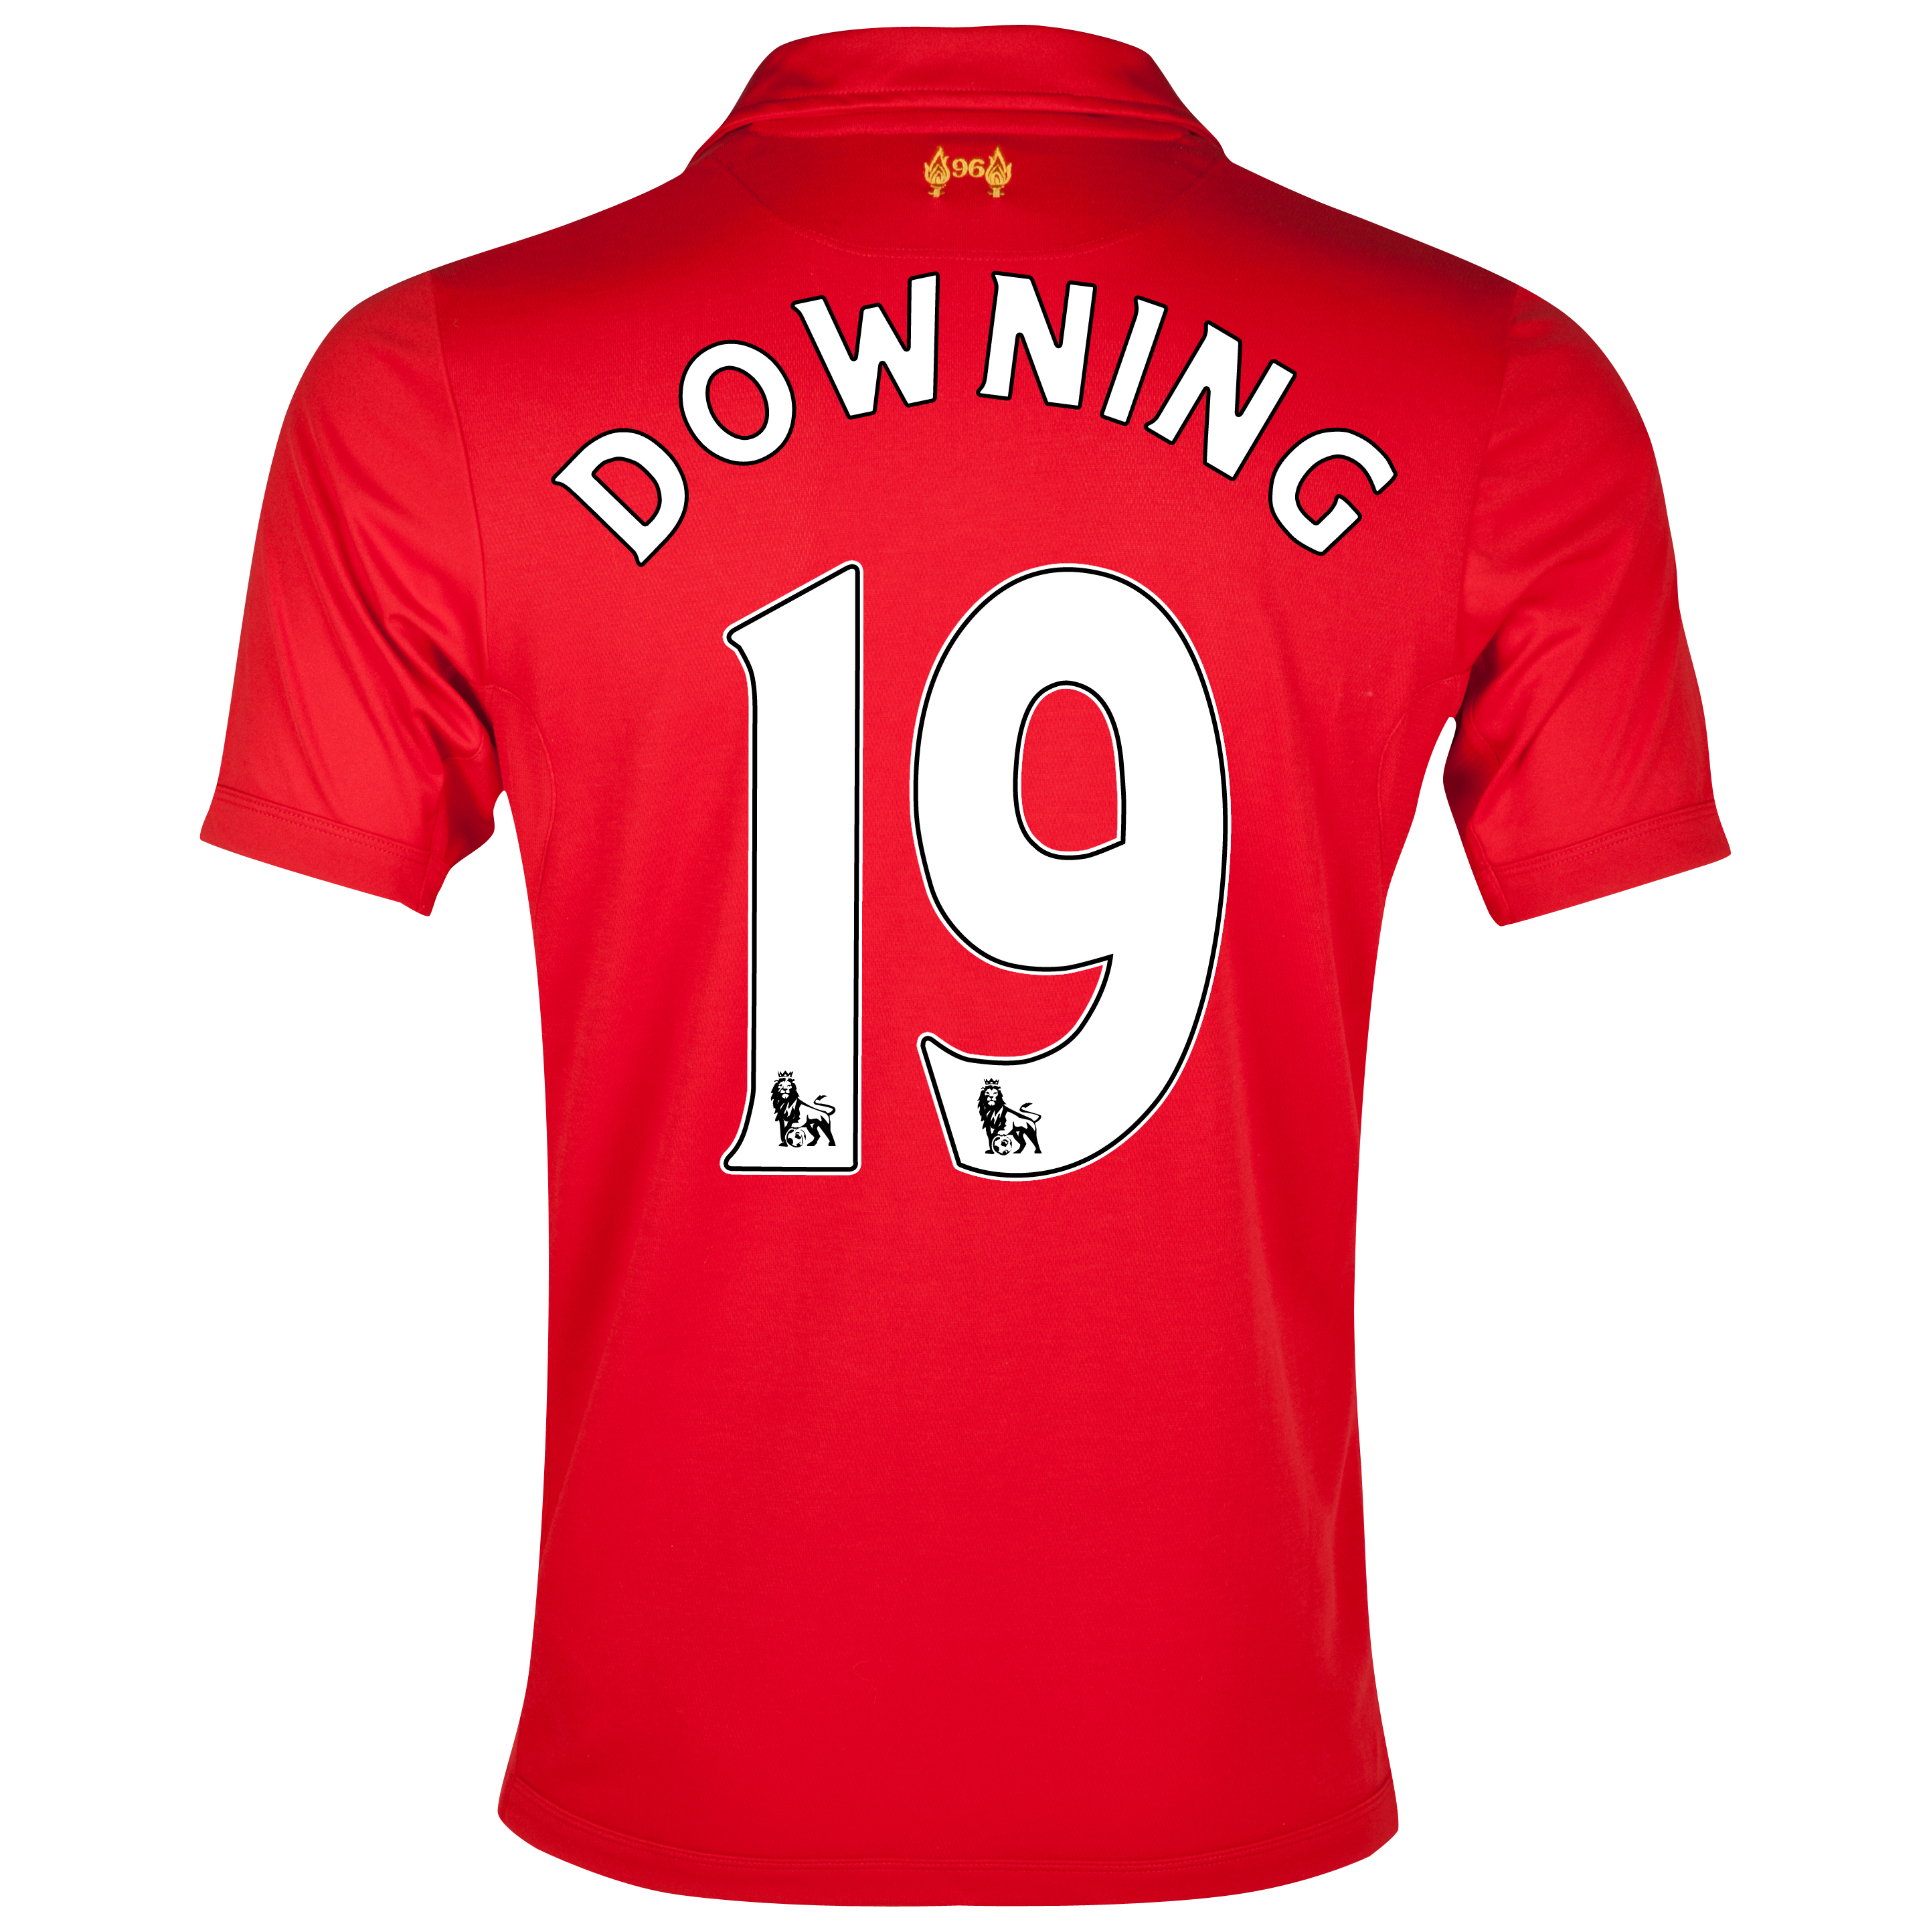 Liverpool Home Shirt 2012/13 - Youths with Downing 19 printing